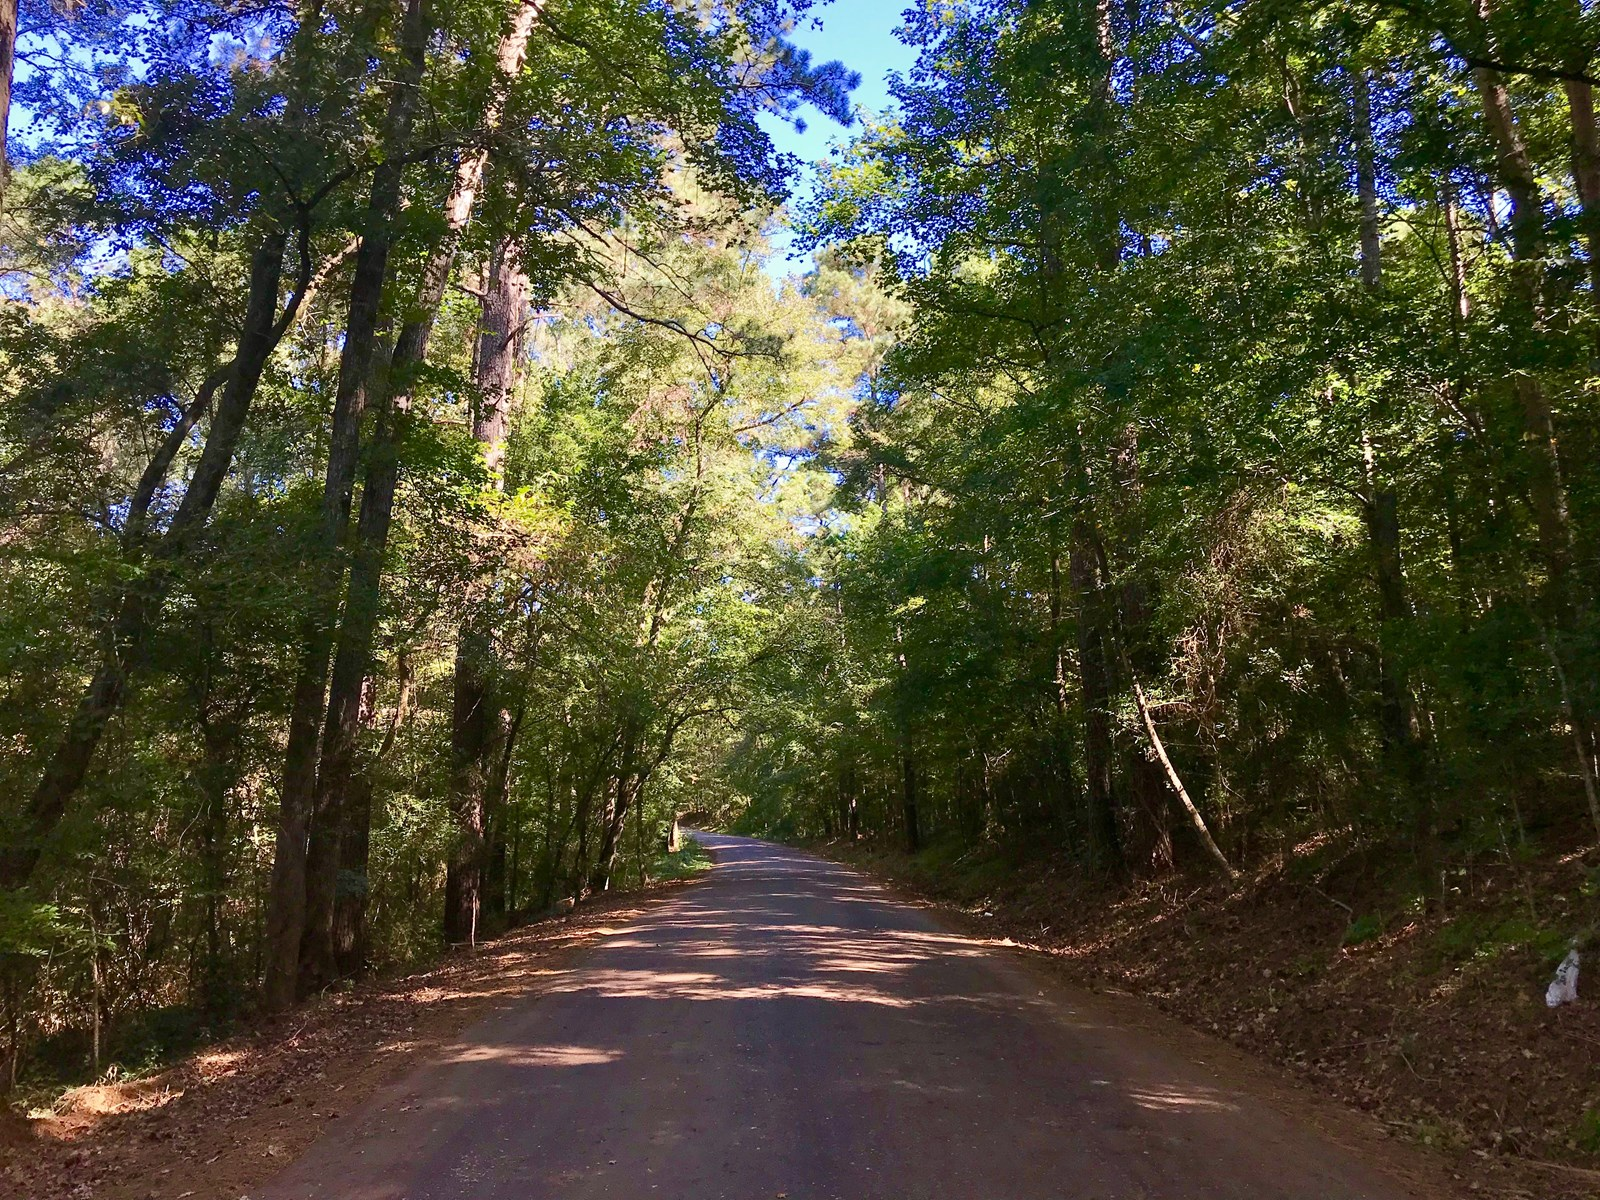 64 ACRES IN NACOGDOCHES CO, PERFECT HUNTING & PASTURE LAND